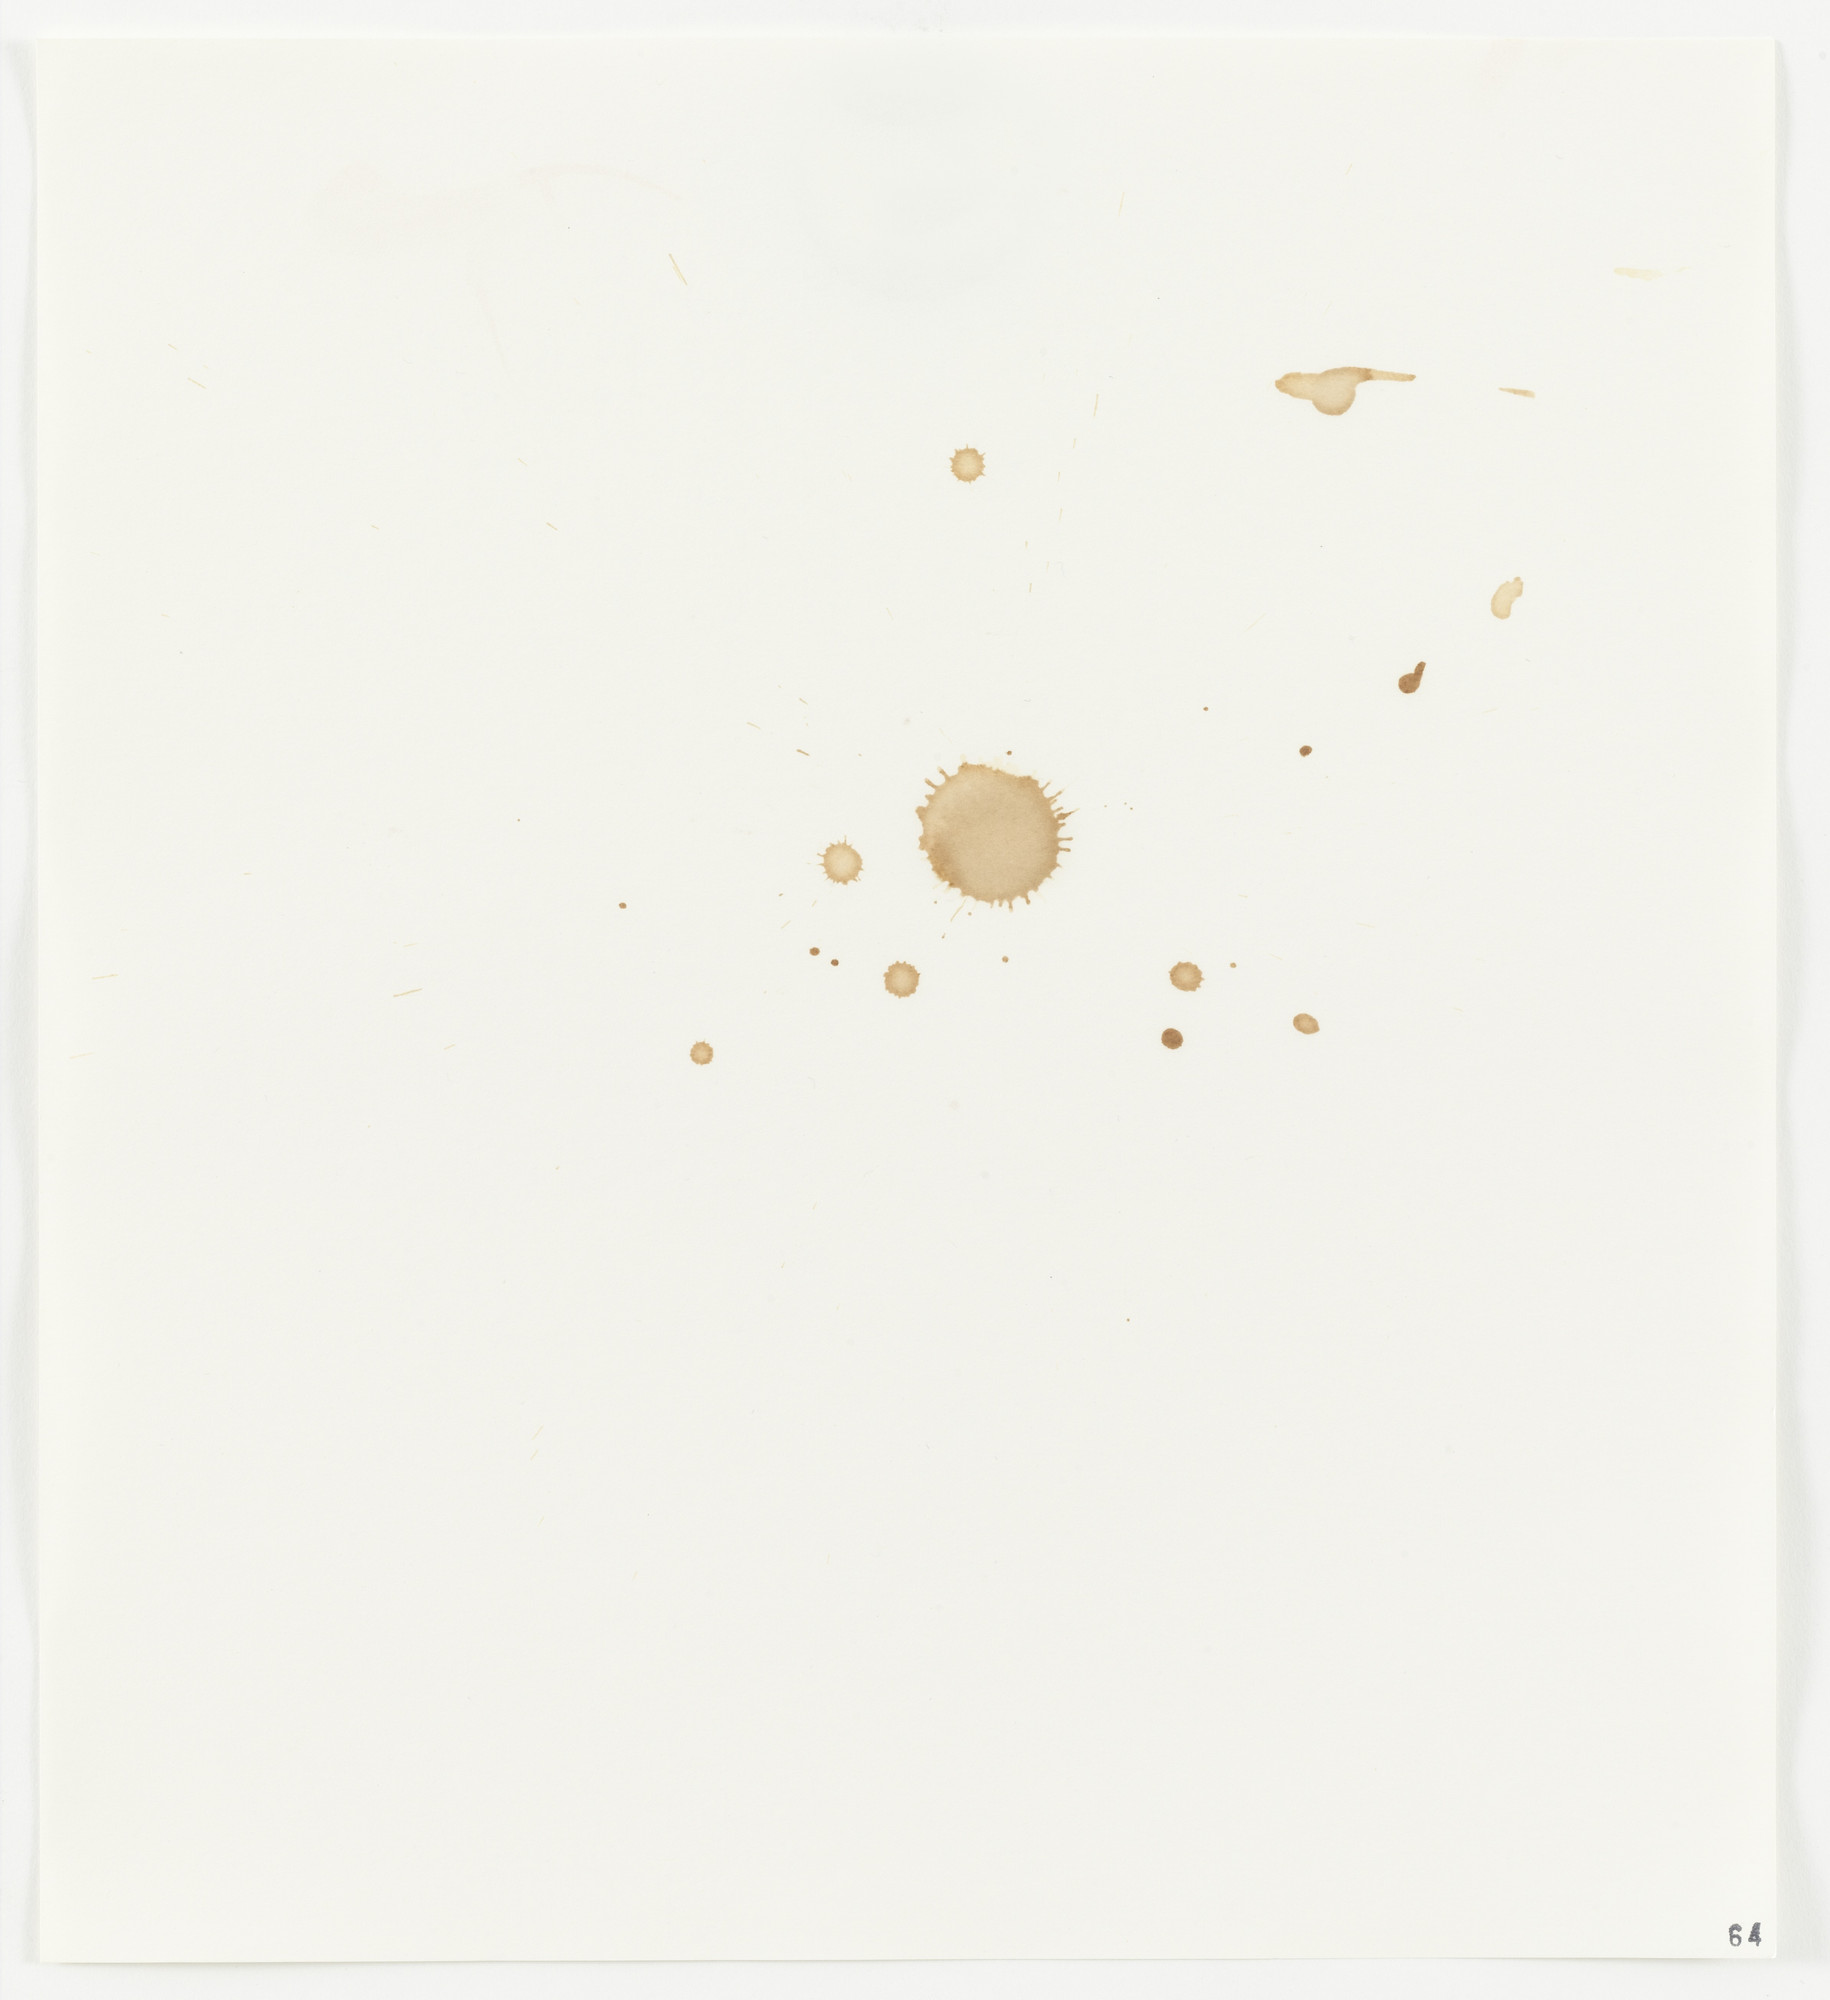 Edward Ruscha. Apple Juice (Tree Top Pure) from Stains. 1969